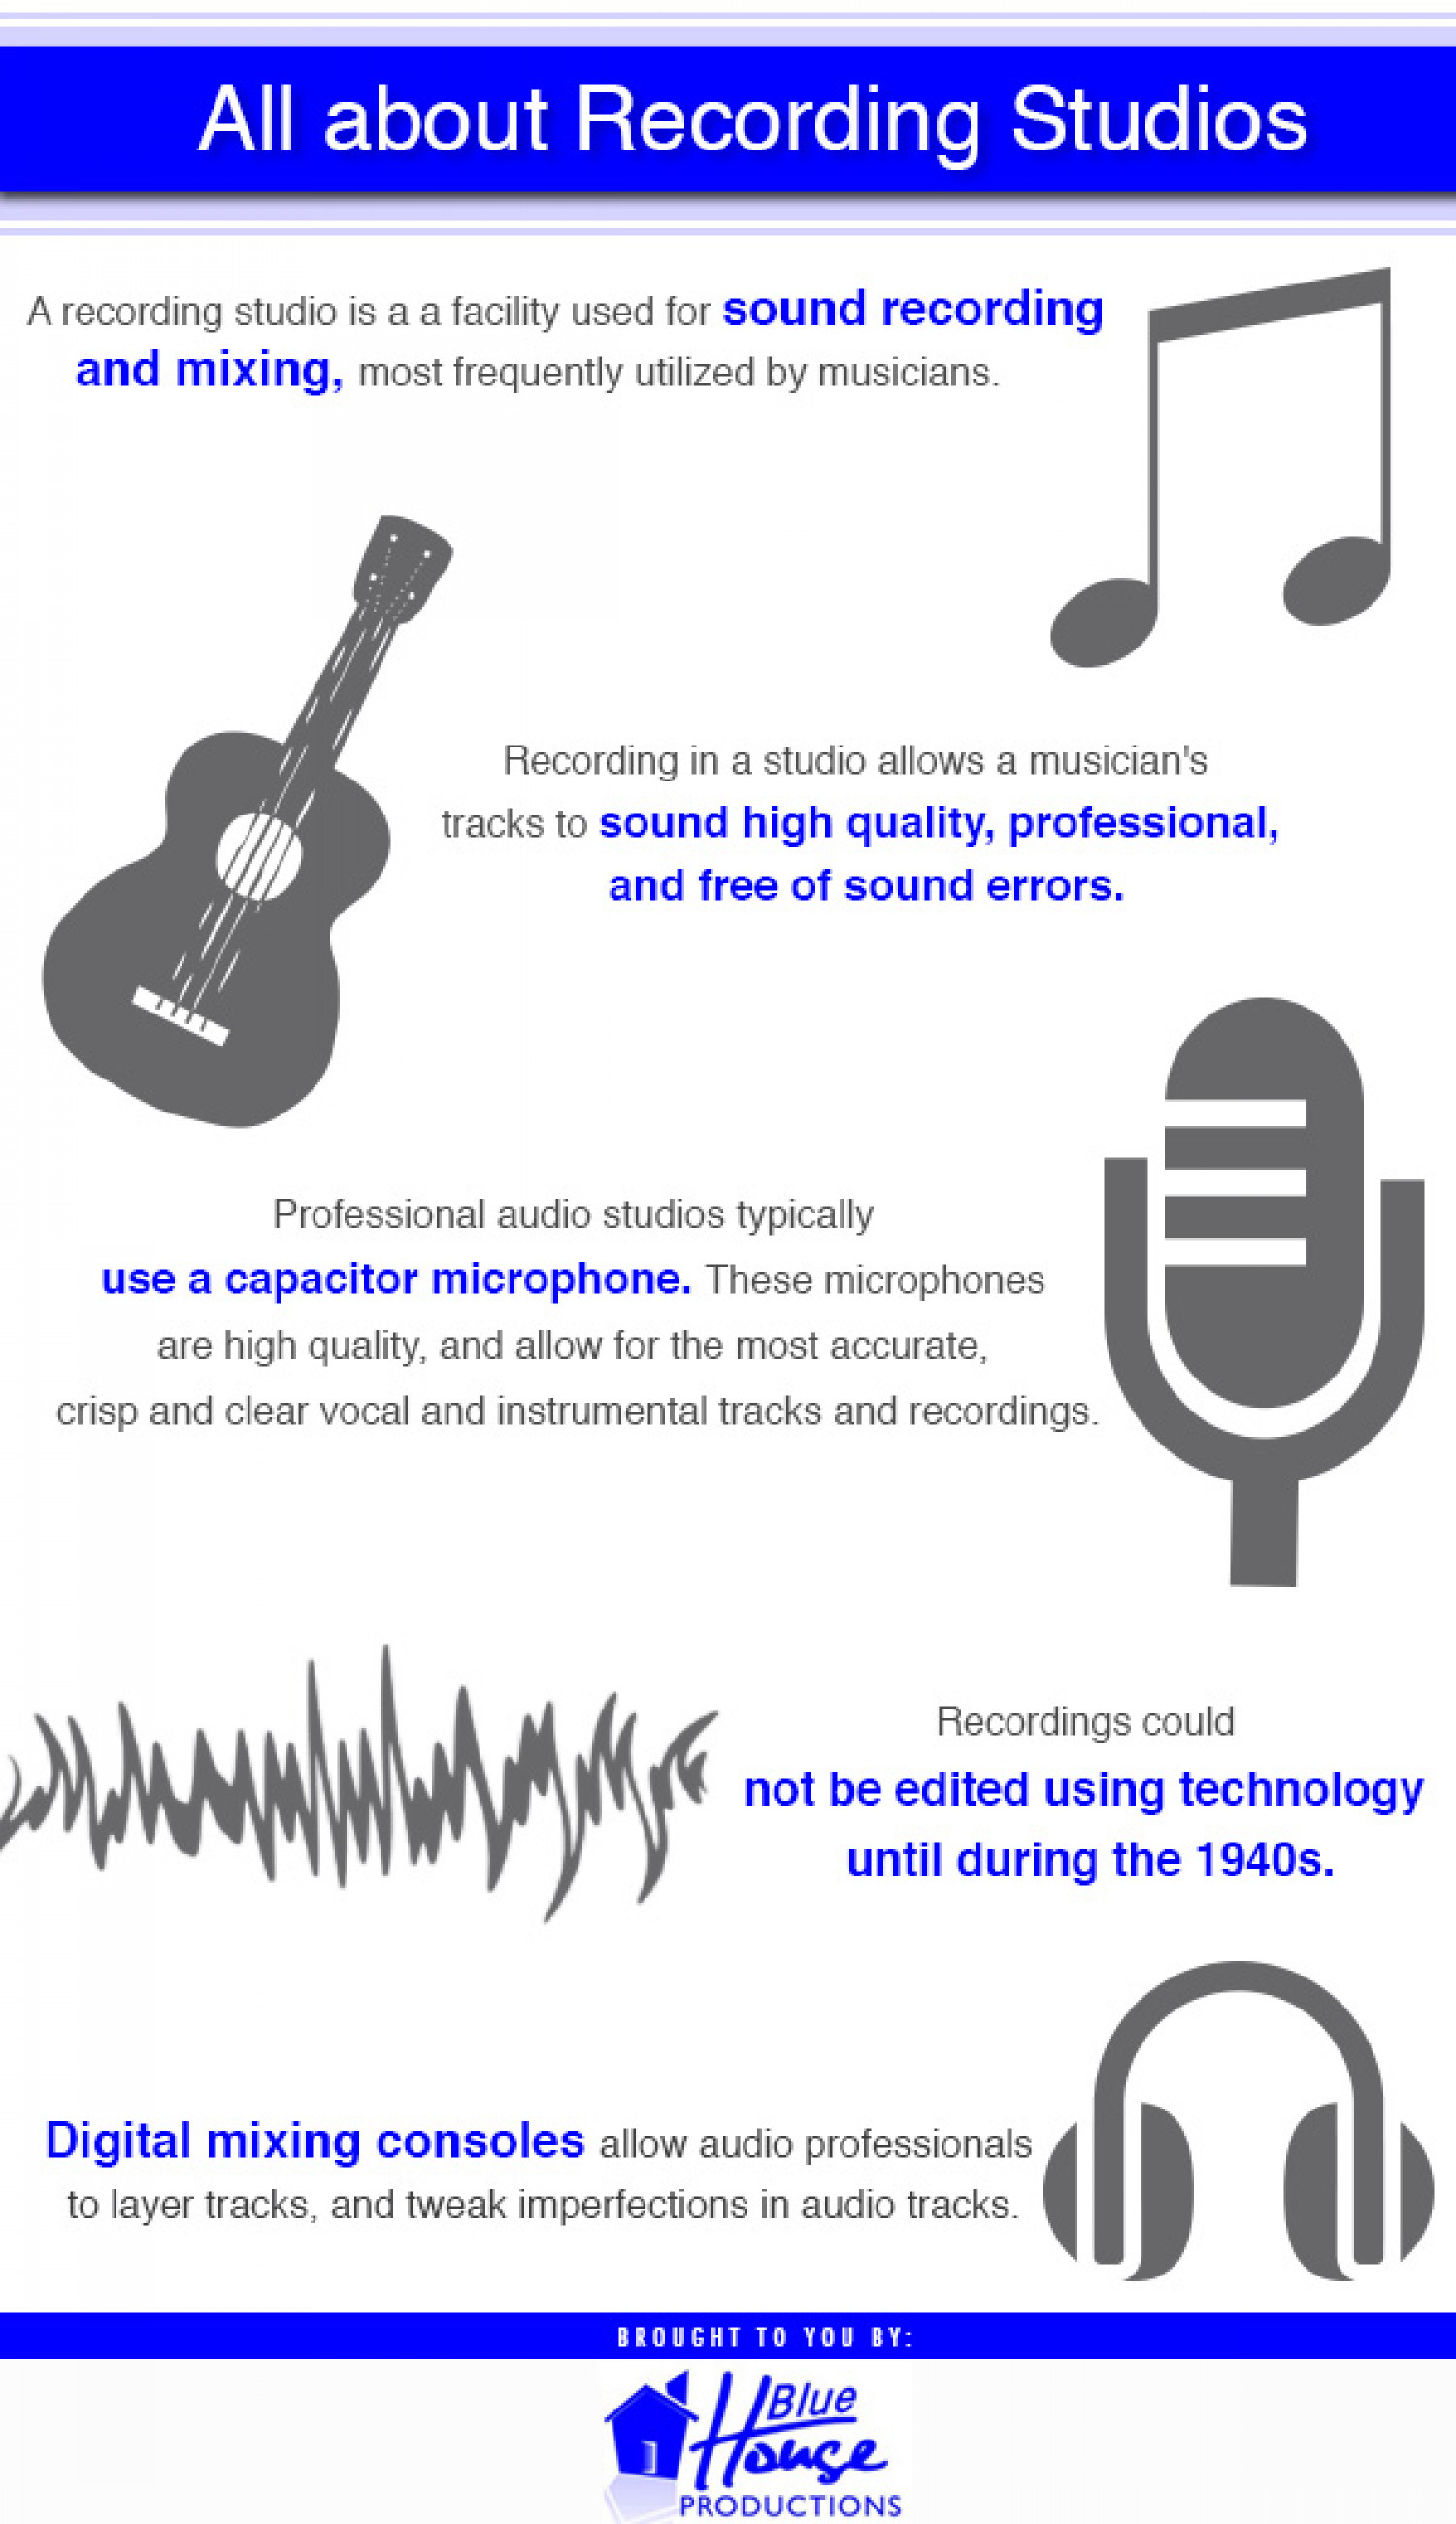 All about Recording Studios Infographic